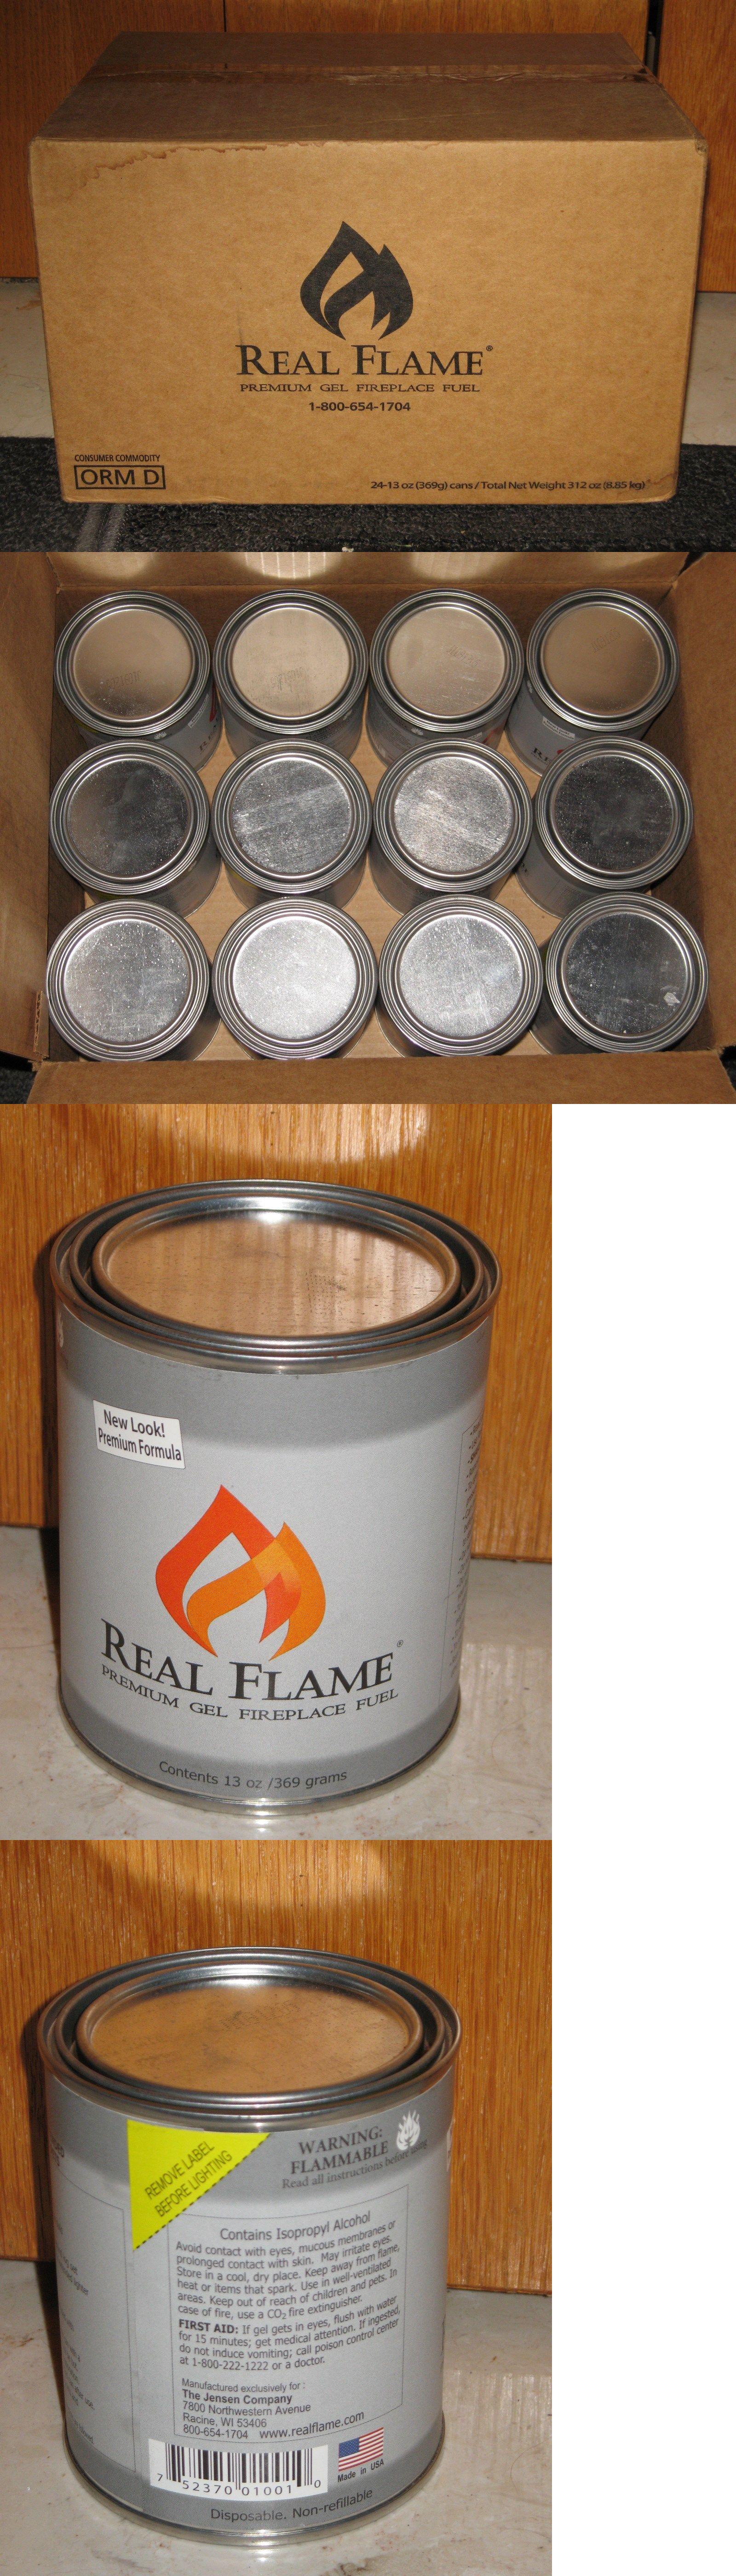 Fuel and Firewood 175755: Real Flame Gel Fireplace Fuel Clean ...